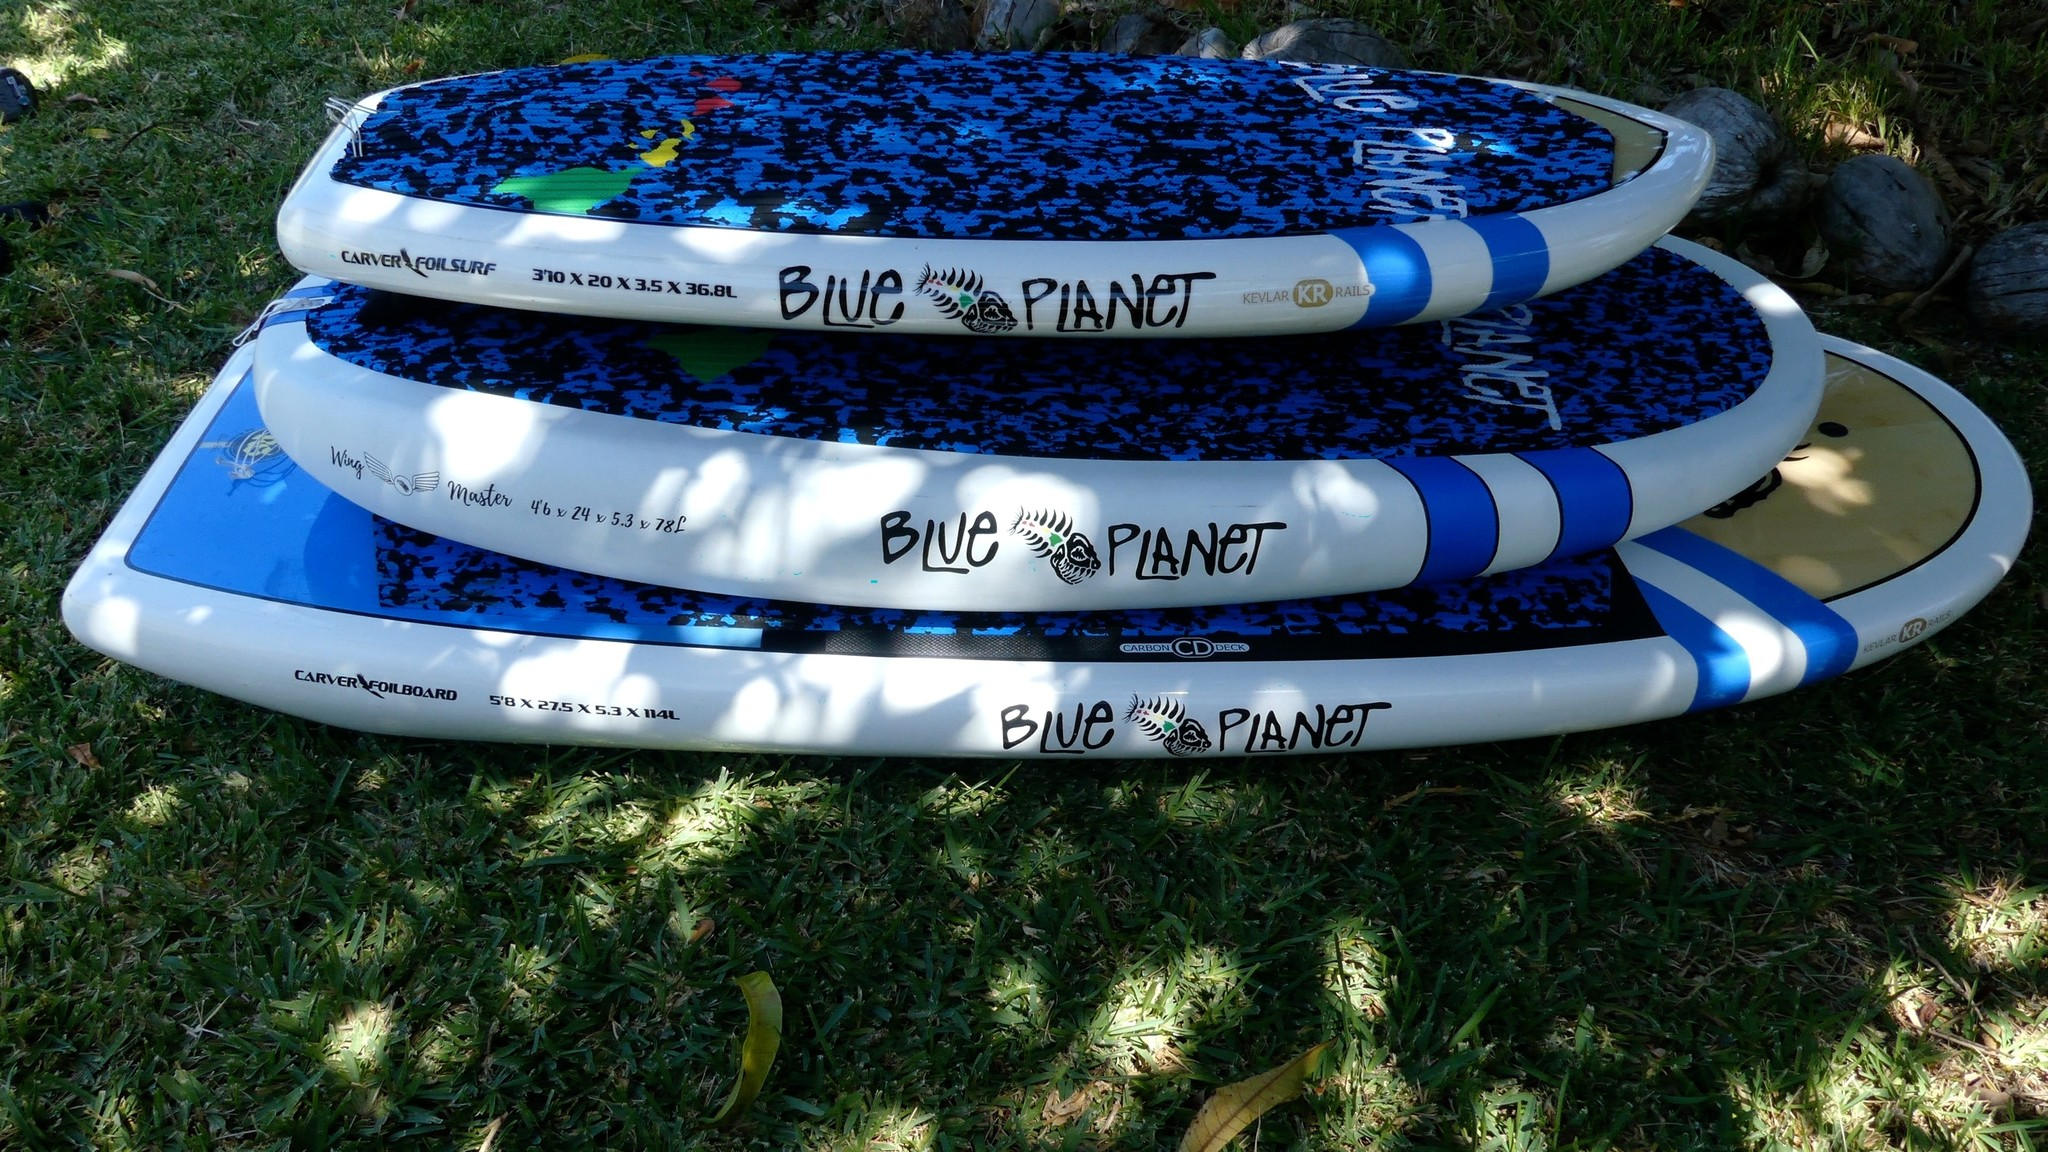 different foil boards for prone foil surfing, wing foil surfing, and SUP Foiling